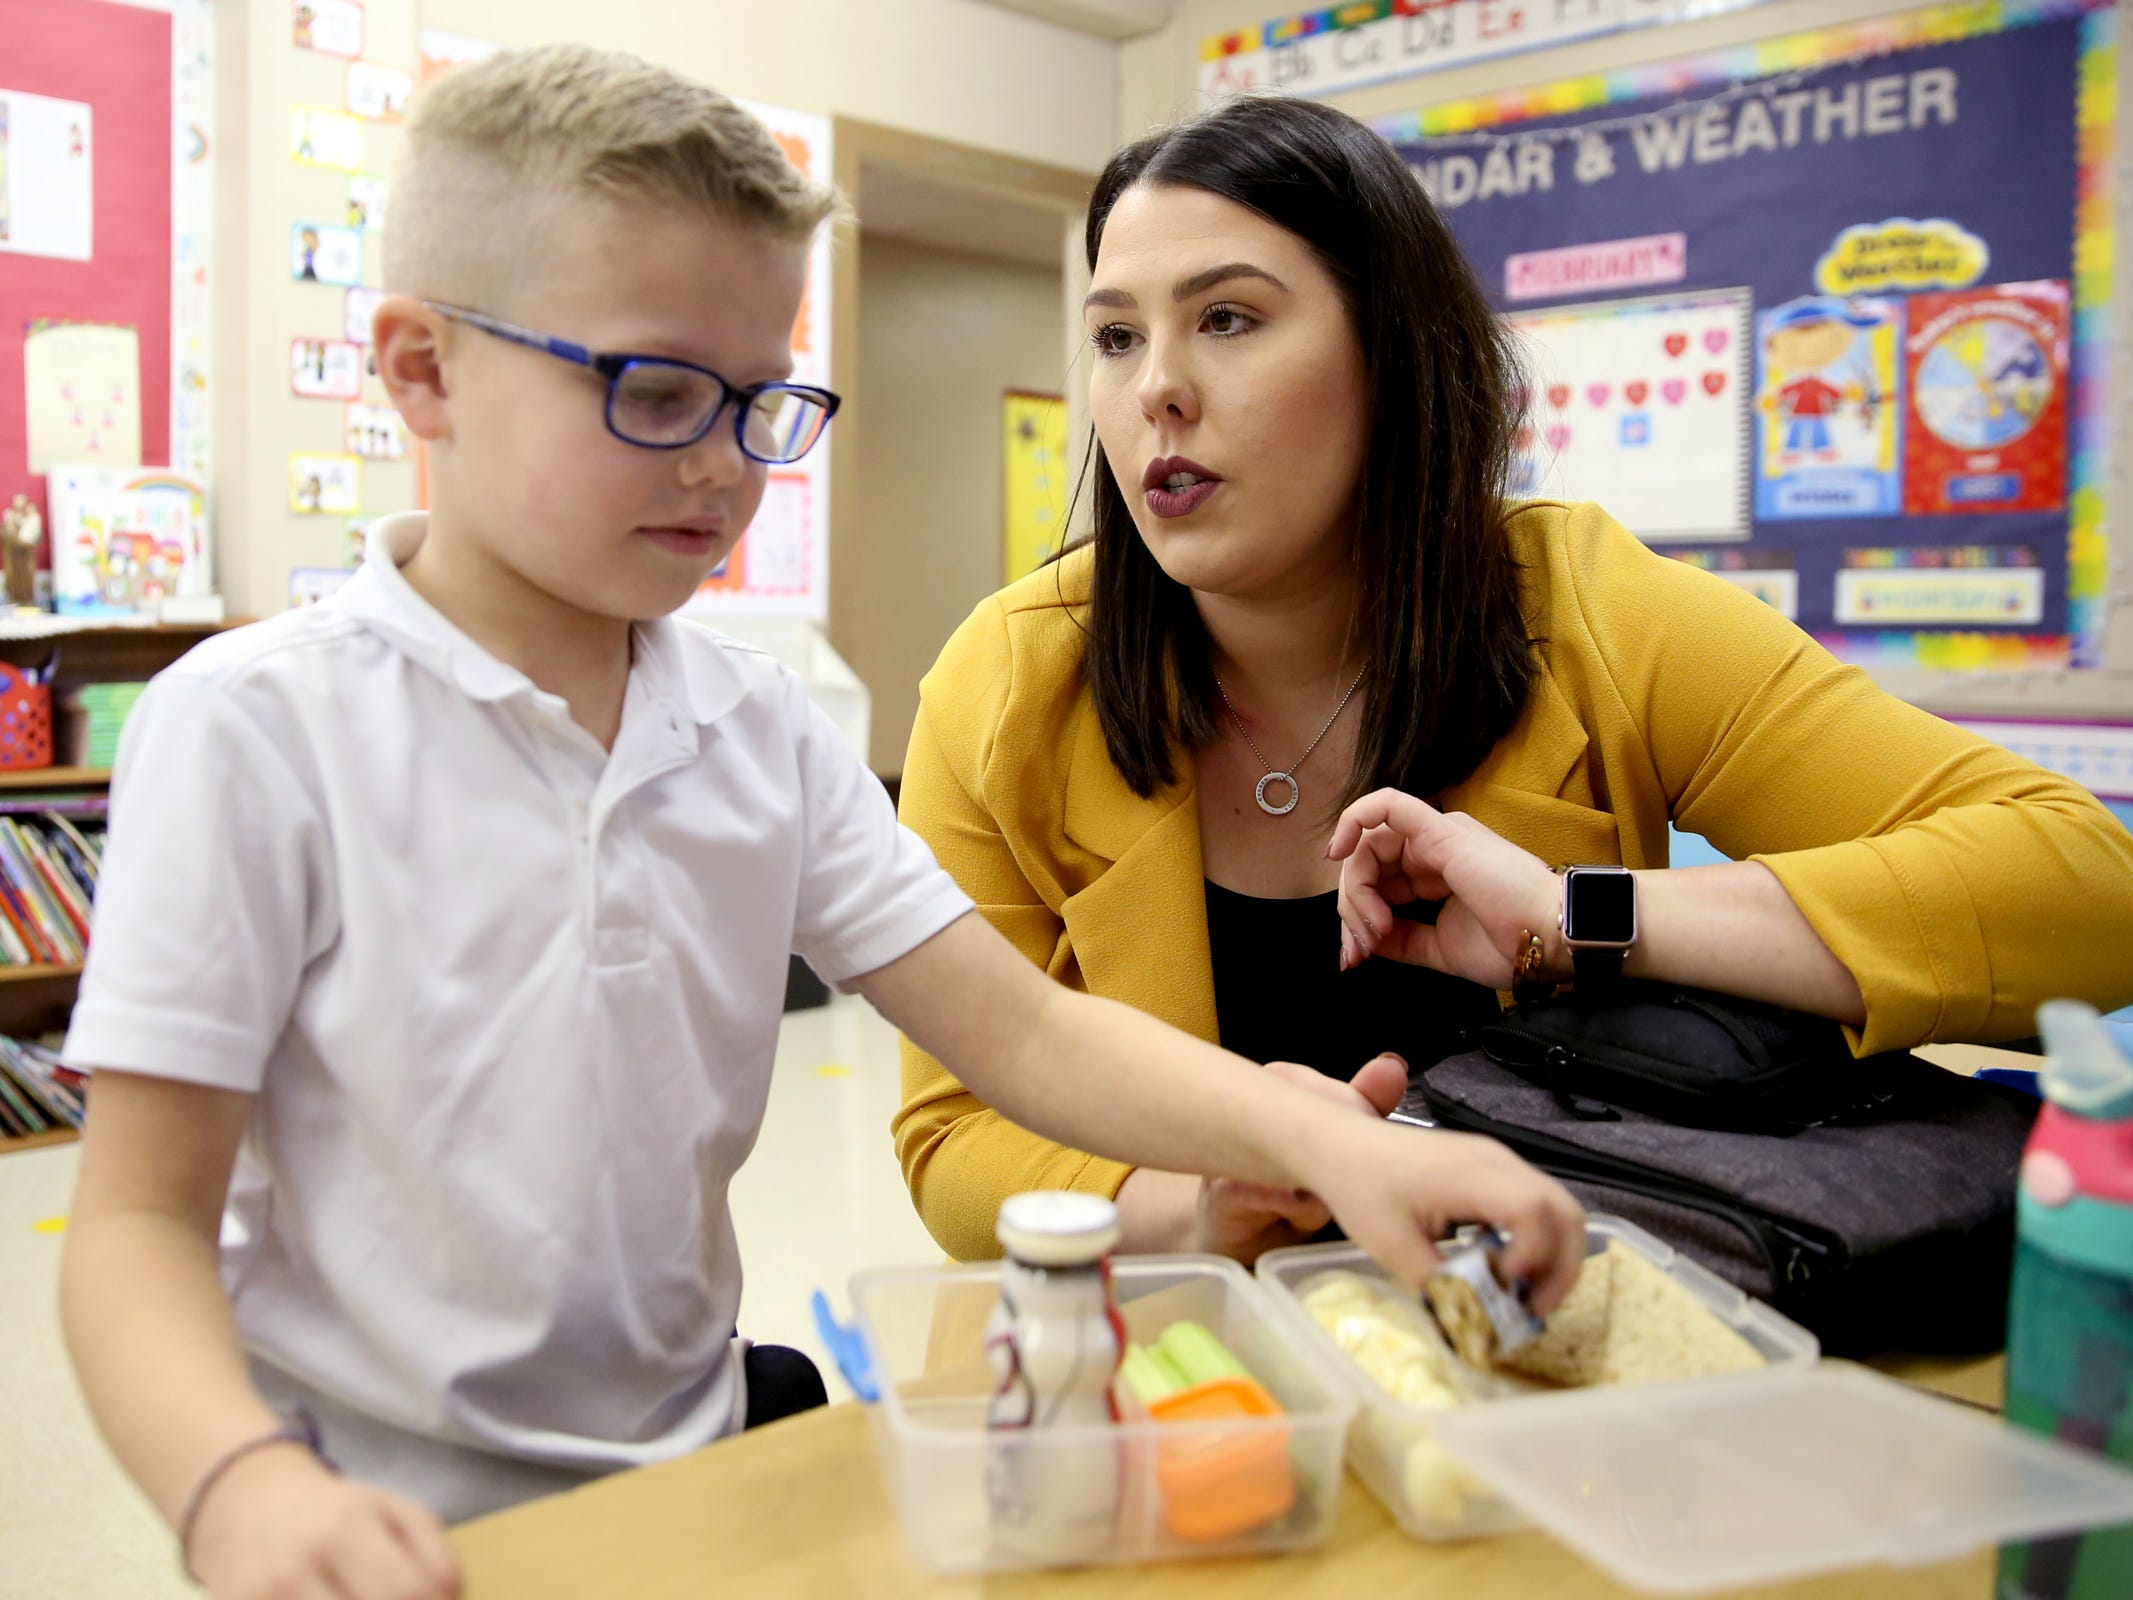 Jessica Wangler monitors the insulin dosage for her son Kolton Wangler, 6, who has Type 1 diabetes during his lunch break in his kindergarten classroom at St. Joseph Catholic School in Salem on Tuesday, Feb. 12, 2019. Wangler works in Sen. Peter Courtney's office, and when he heard her story he introduced a bill to allow people to get emergency insulin from the pharmacy.